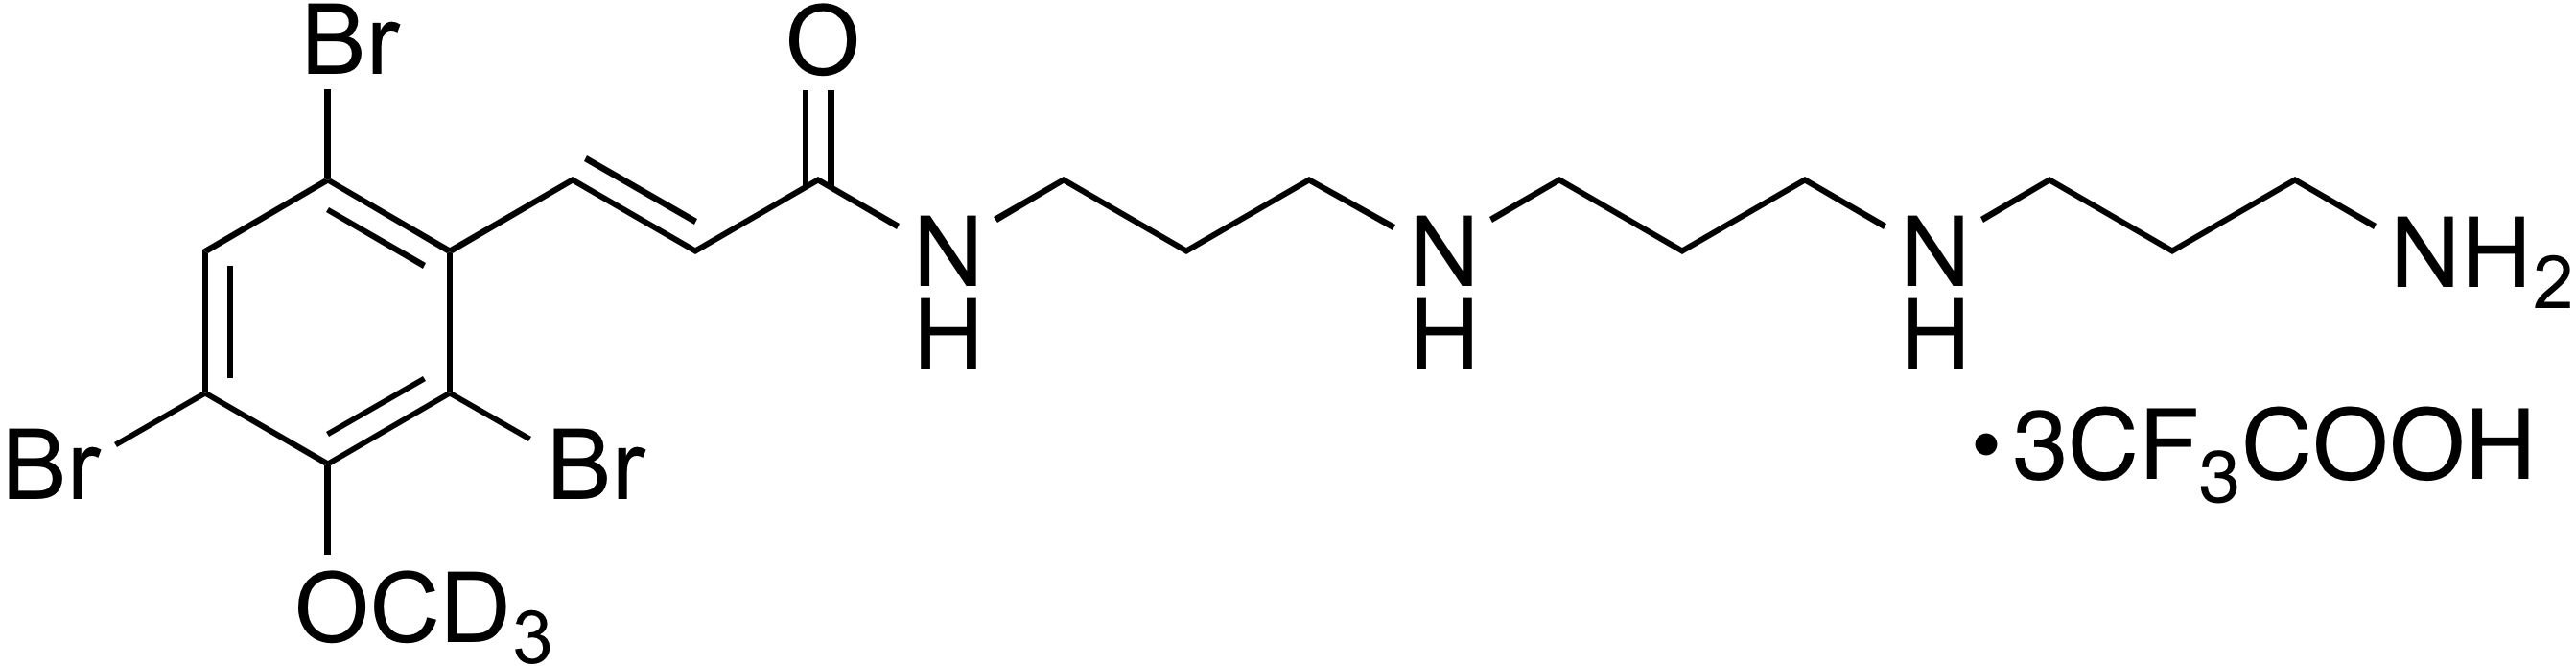 (E)-N-(3-((3-((3-Aminopropyl)amino)propyl)amino)propyl)-3-(2,4,6-tribromo-3-methoxy-d<sub>3</sub>-phenyl)acrylamide trifluoroacetate (1:3)